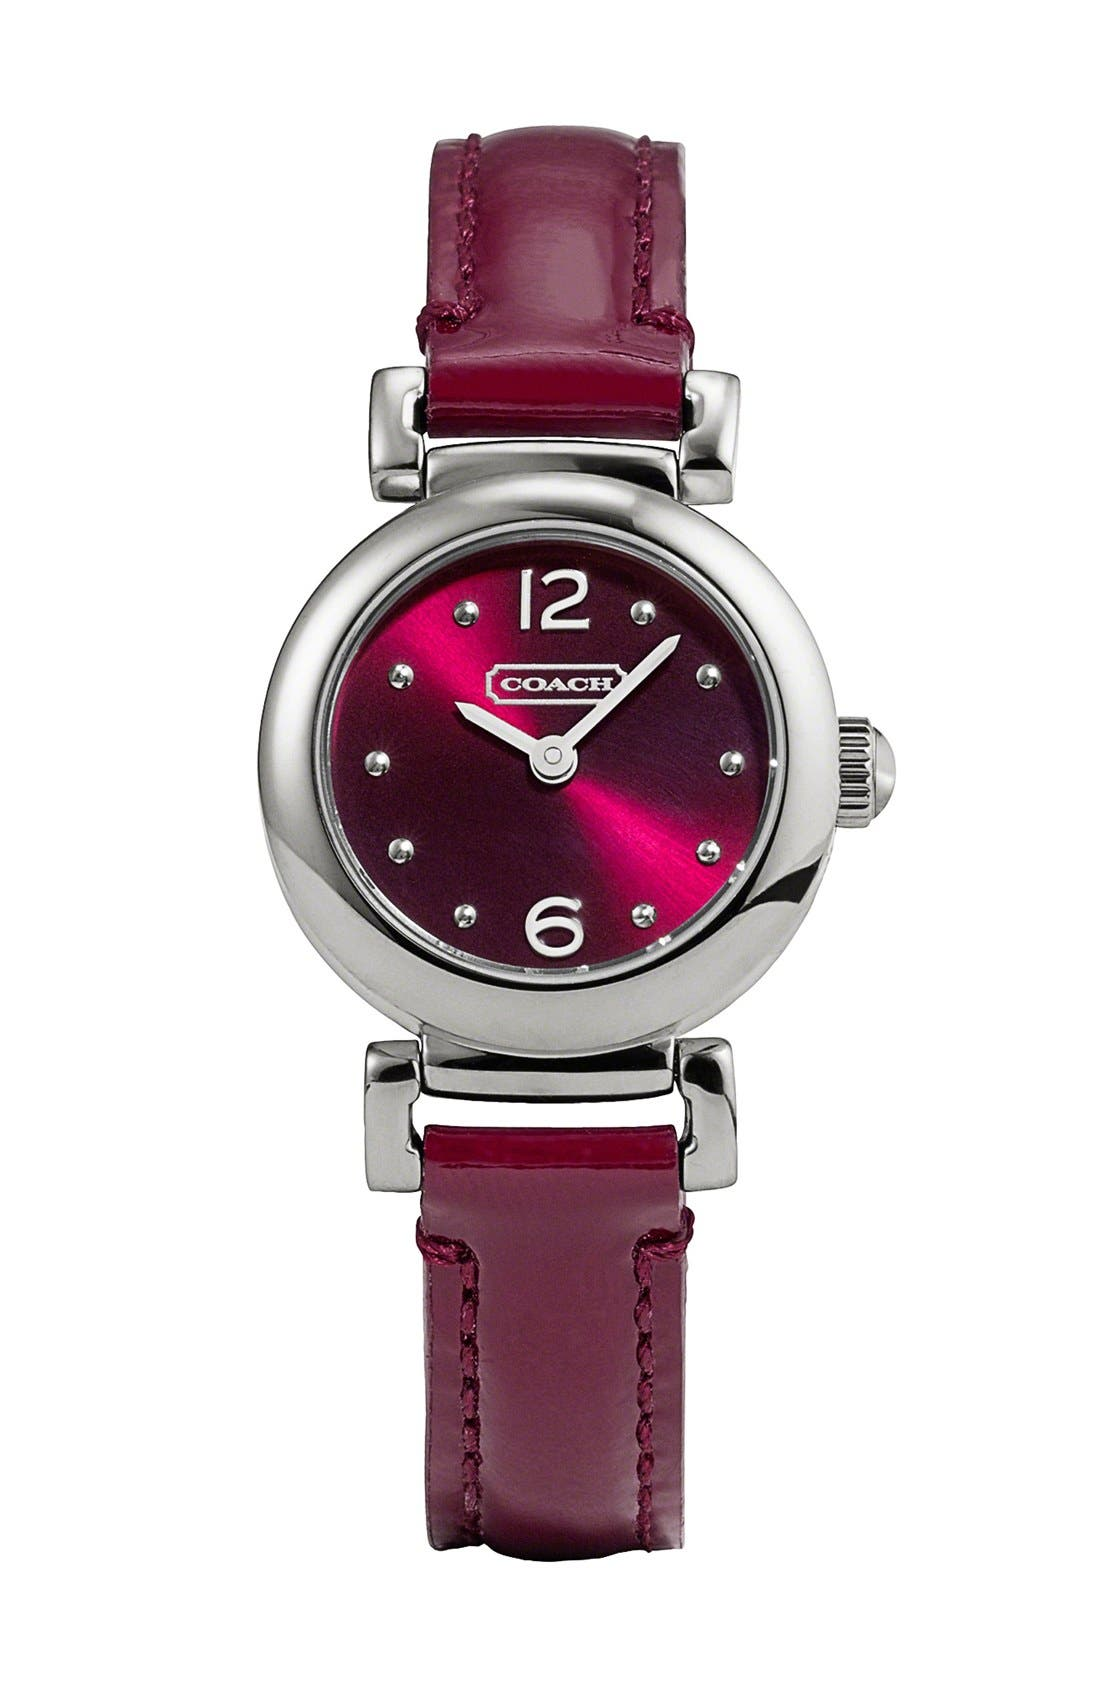 Main Image - COACH 'Madison' Round Leather Strap Watch, 23mm